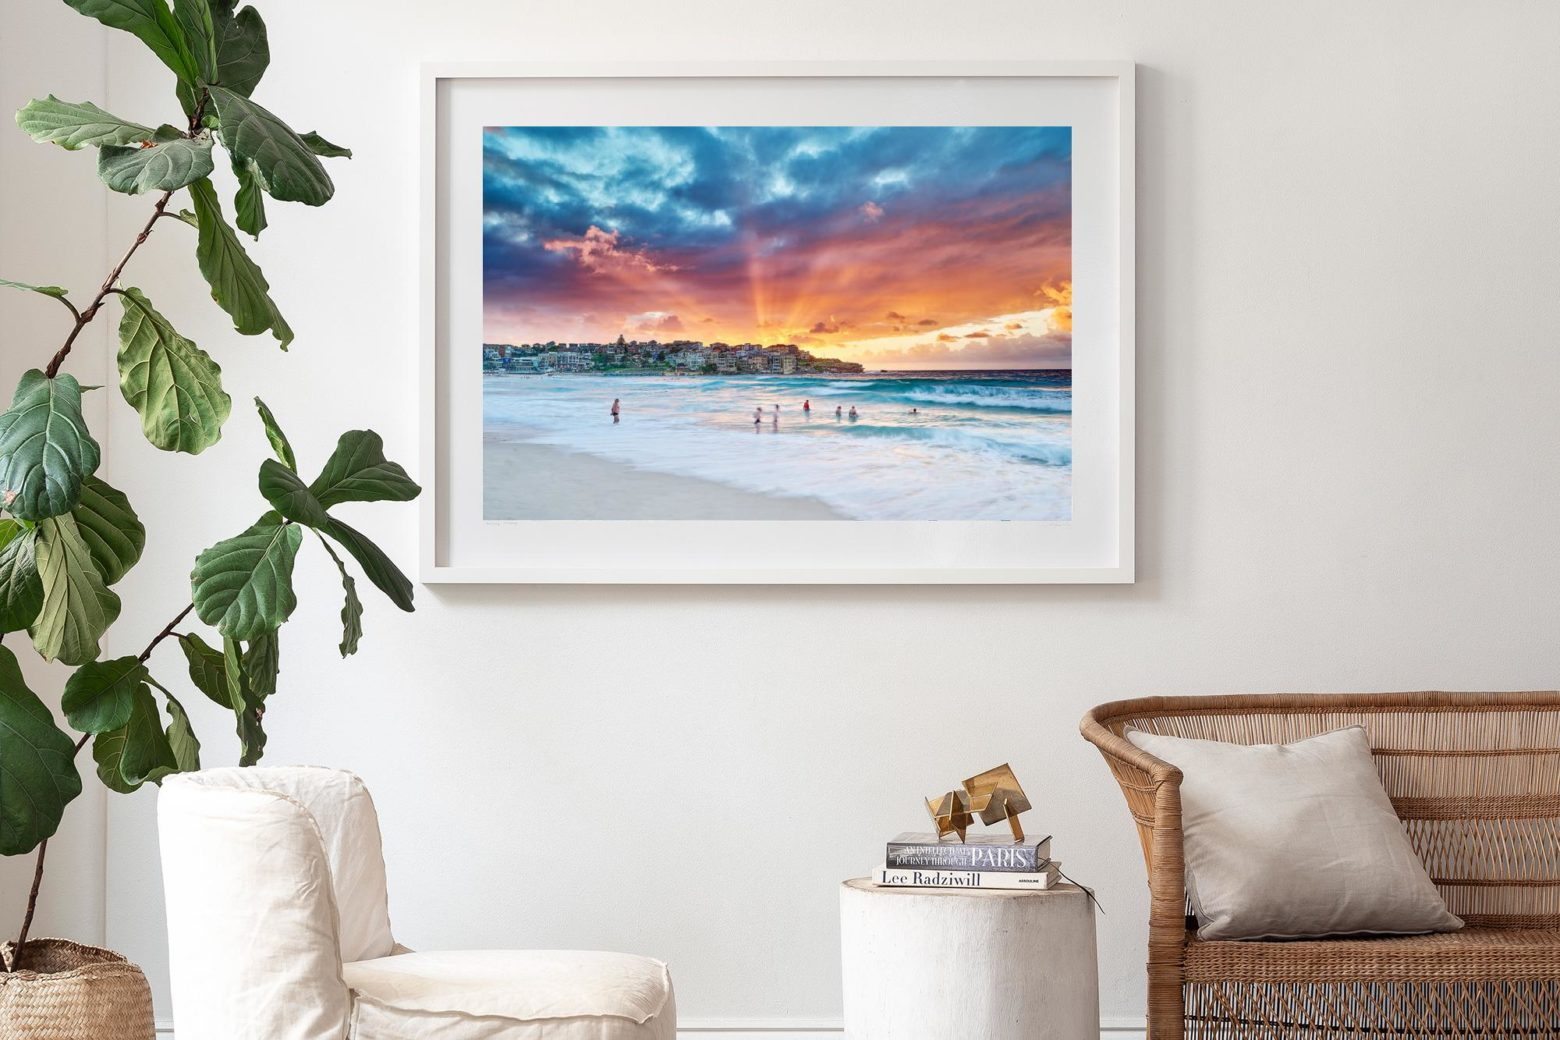 'Striking North' in our White Shadow Box Frame 125 x 90cm